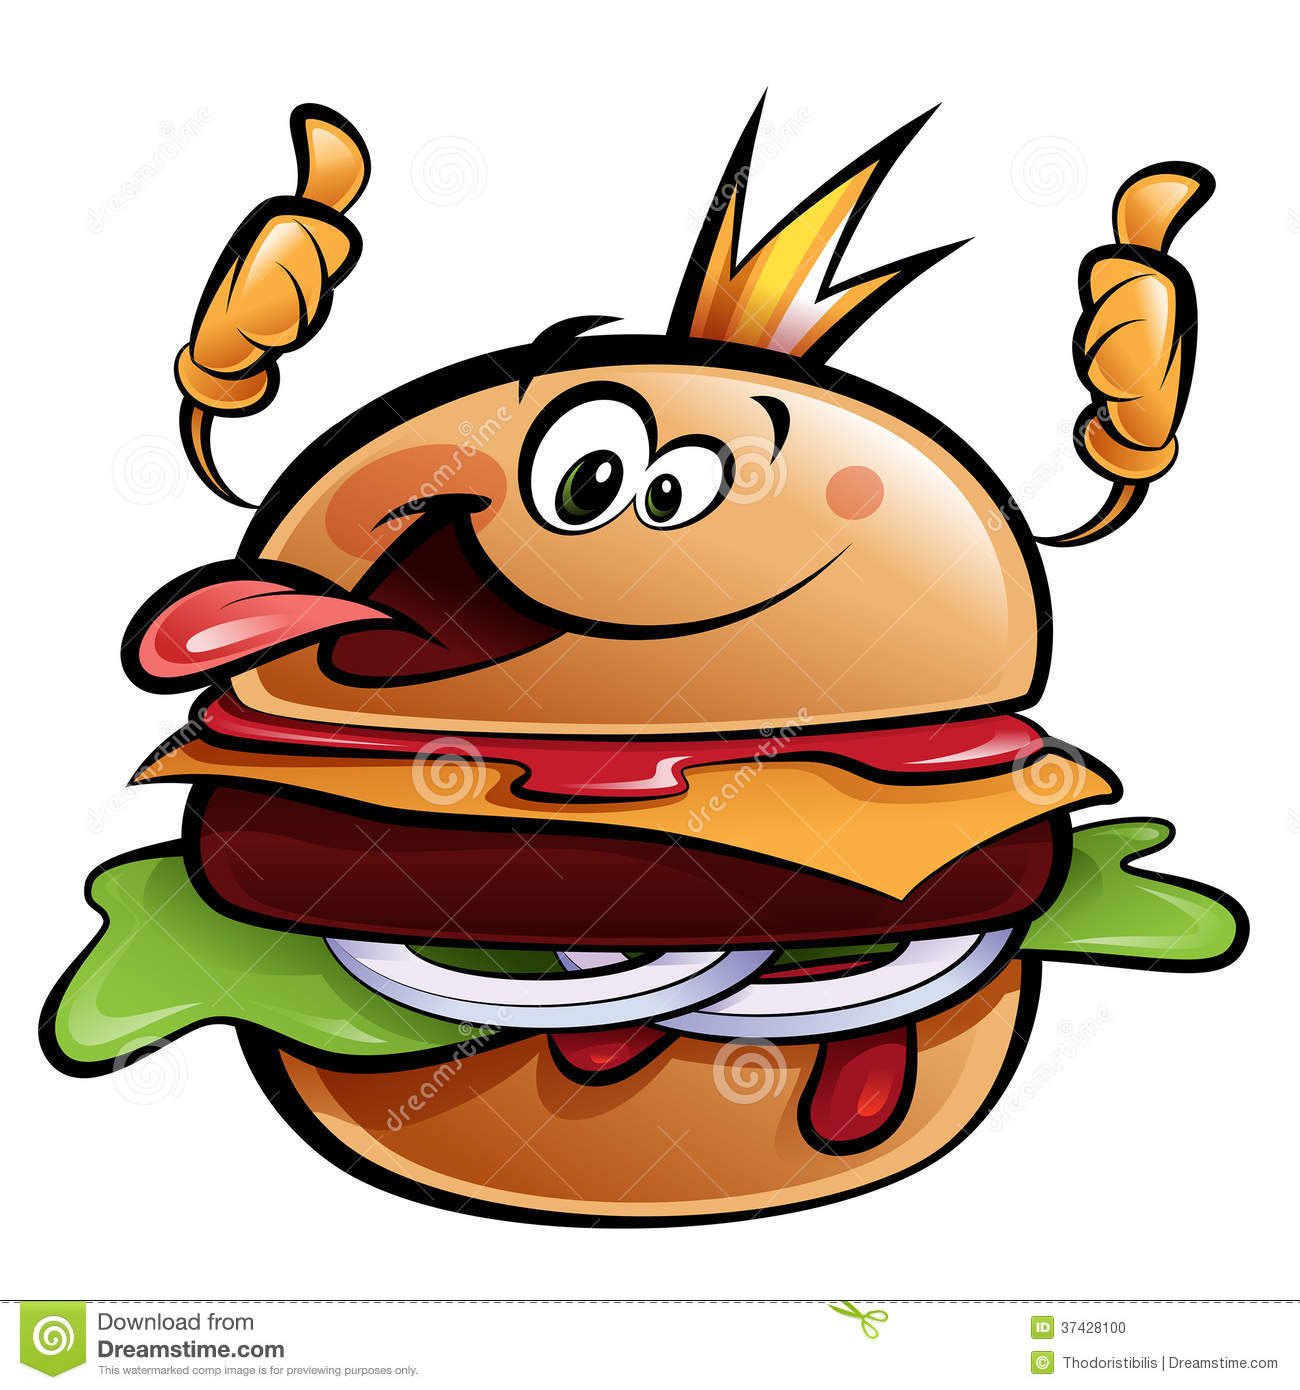 clip art burger king - photo #34